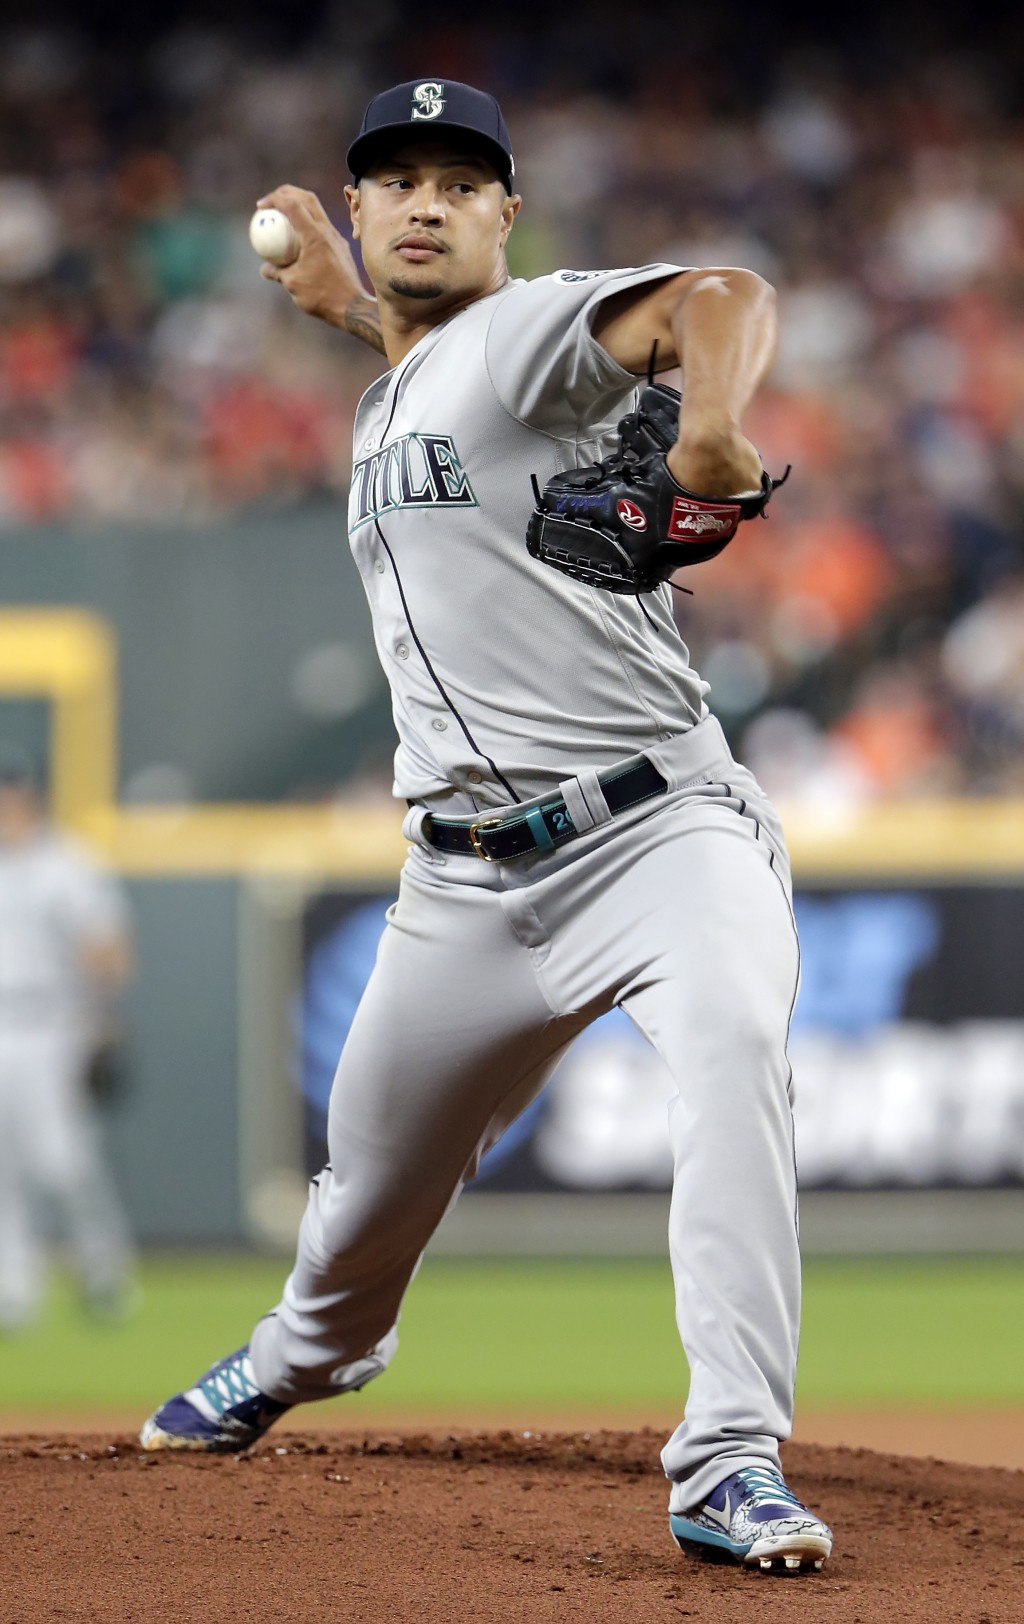 Seattle Mariners starting pitcher Sam Tuivailala throws during the first inning of a baseball game against the Houston Astros, Sunday, Aug. 4, 2019, i...